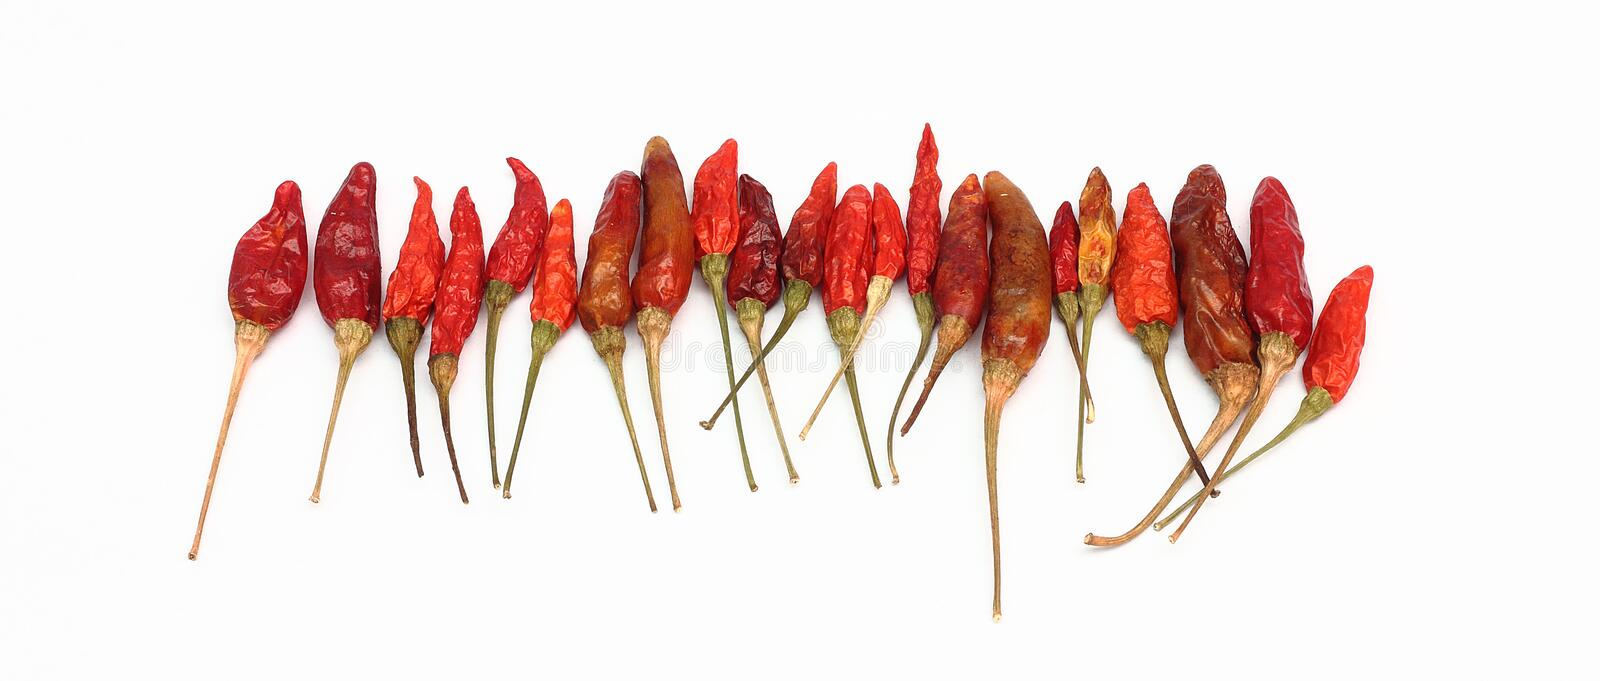 Dried hot chili peppers isolated royalty free stock image